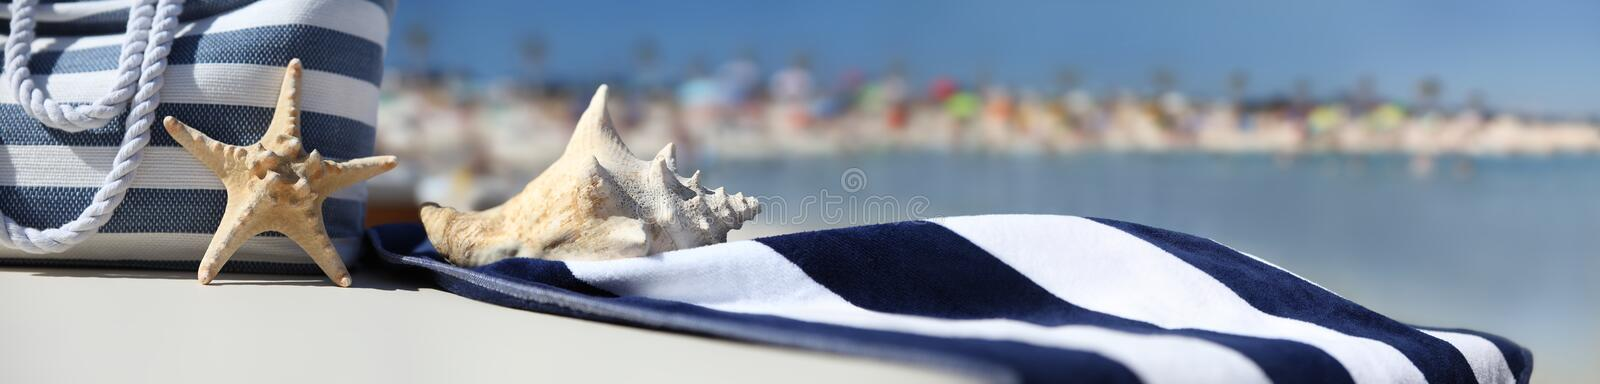 Bag on the beach with starfish, shell and blue towel stock image